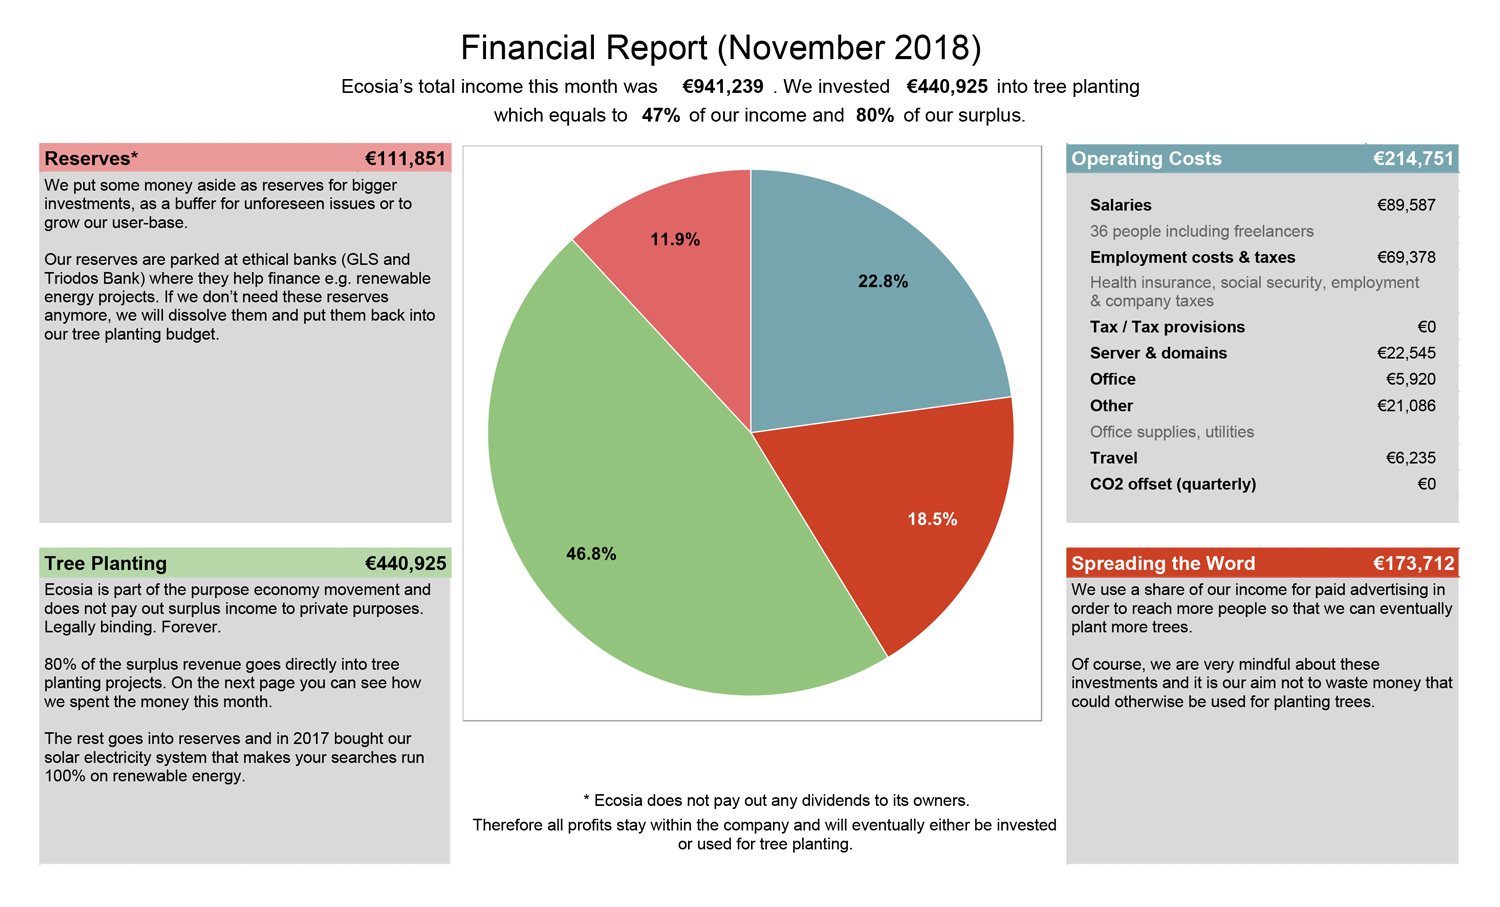 ecosia-financial-report-november-2018